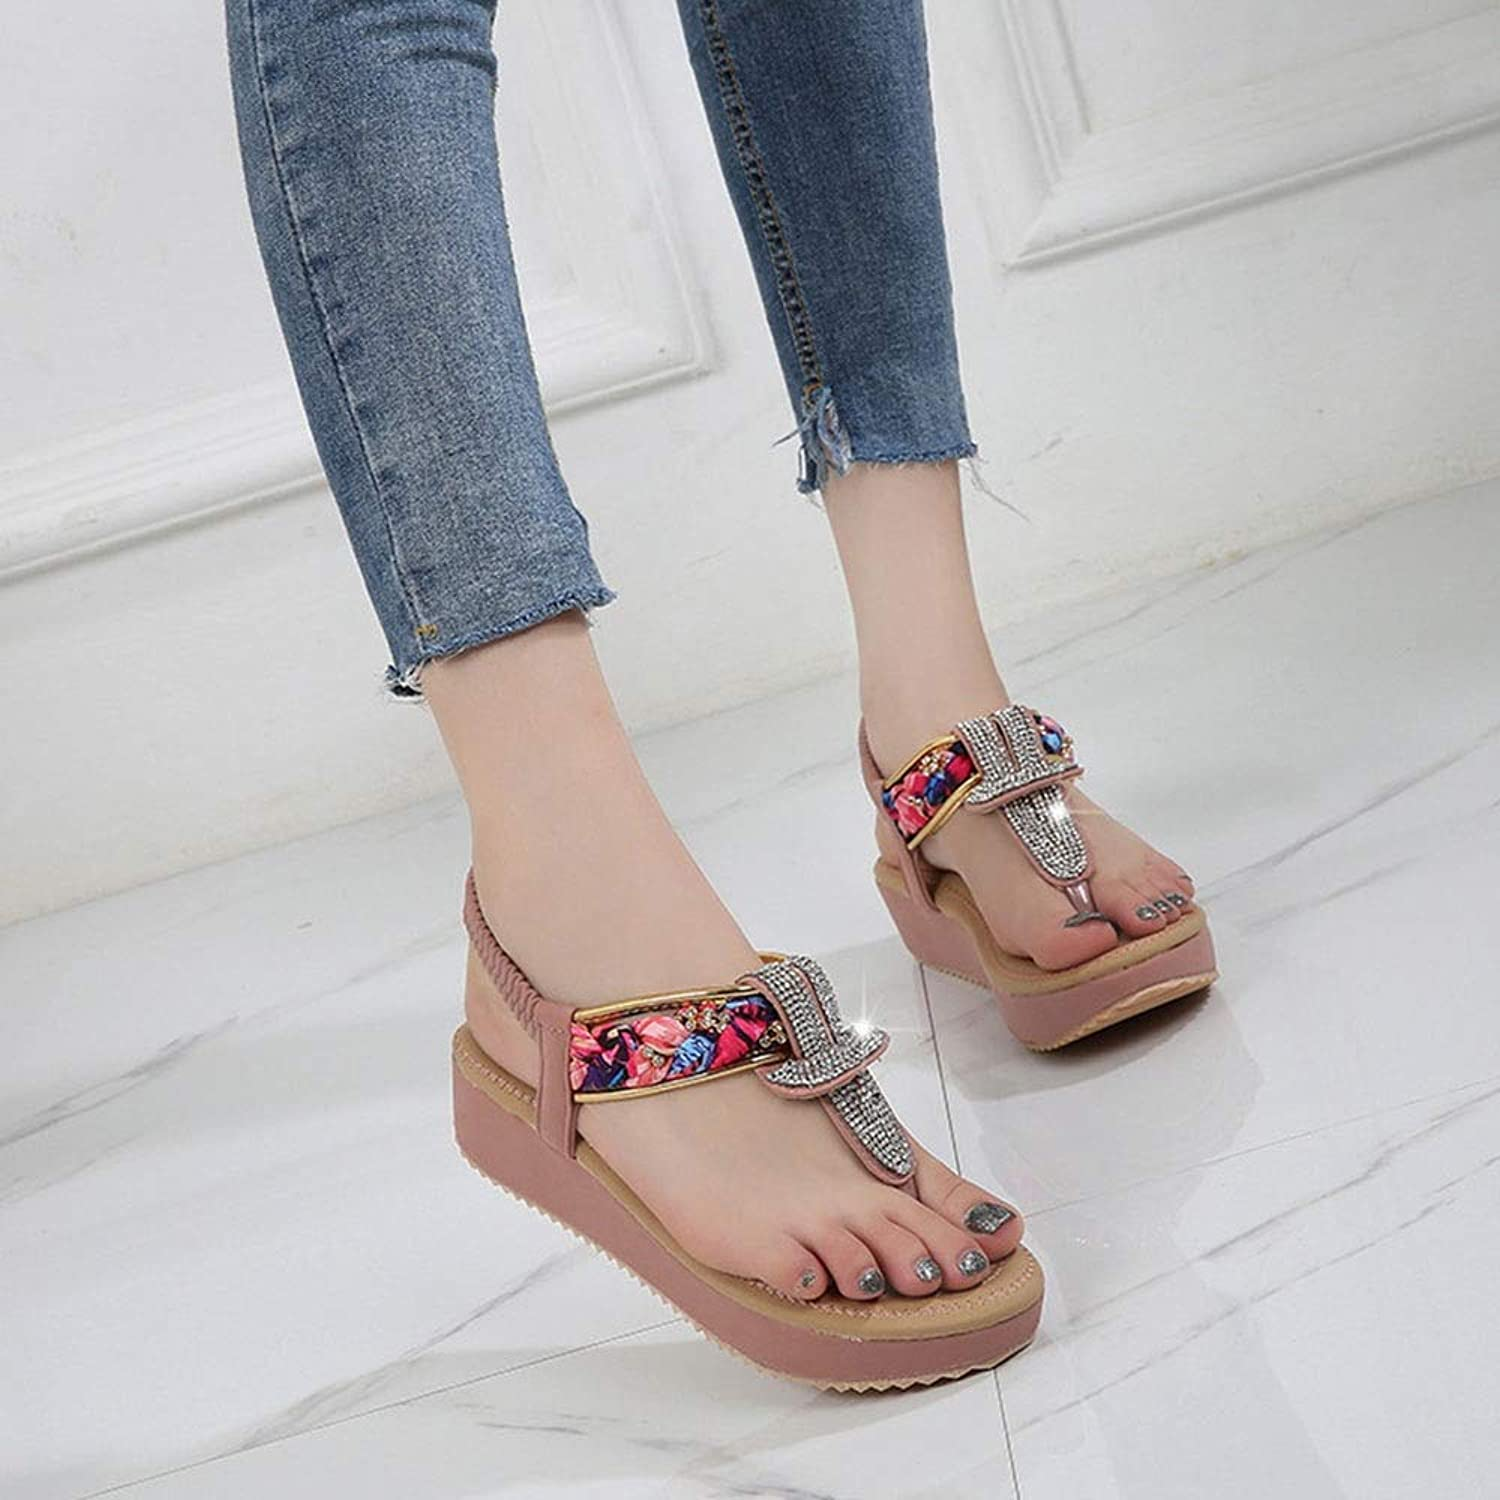 WENNEW Women's Fashion Sandals Bohemian Monotonous shoes